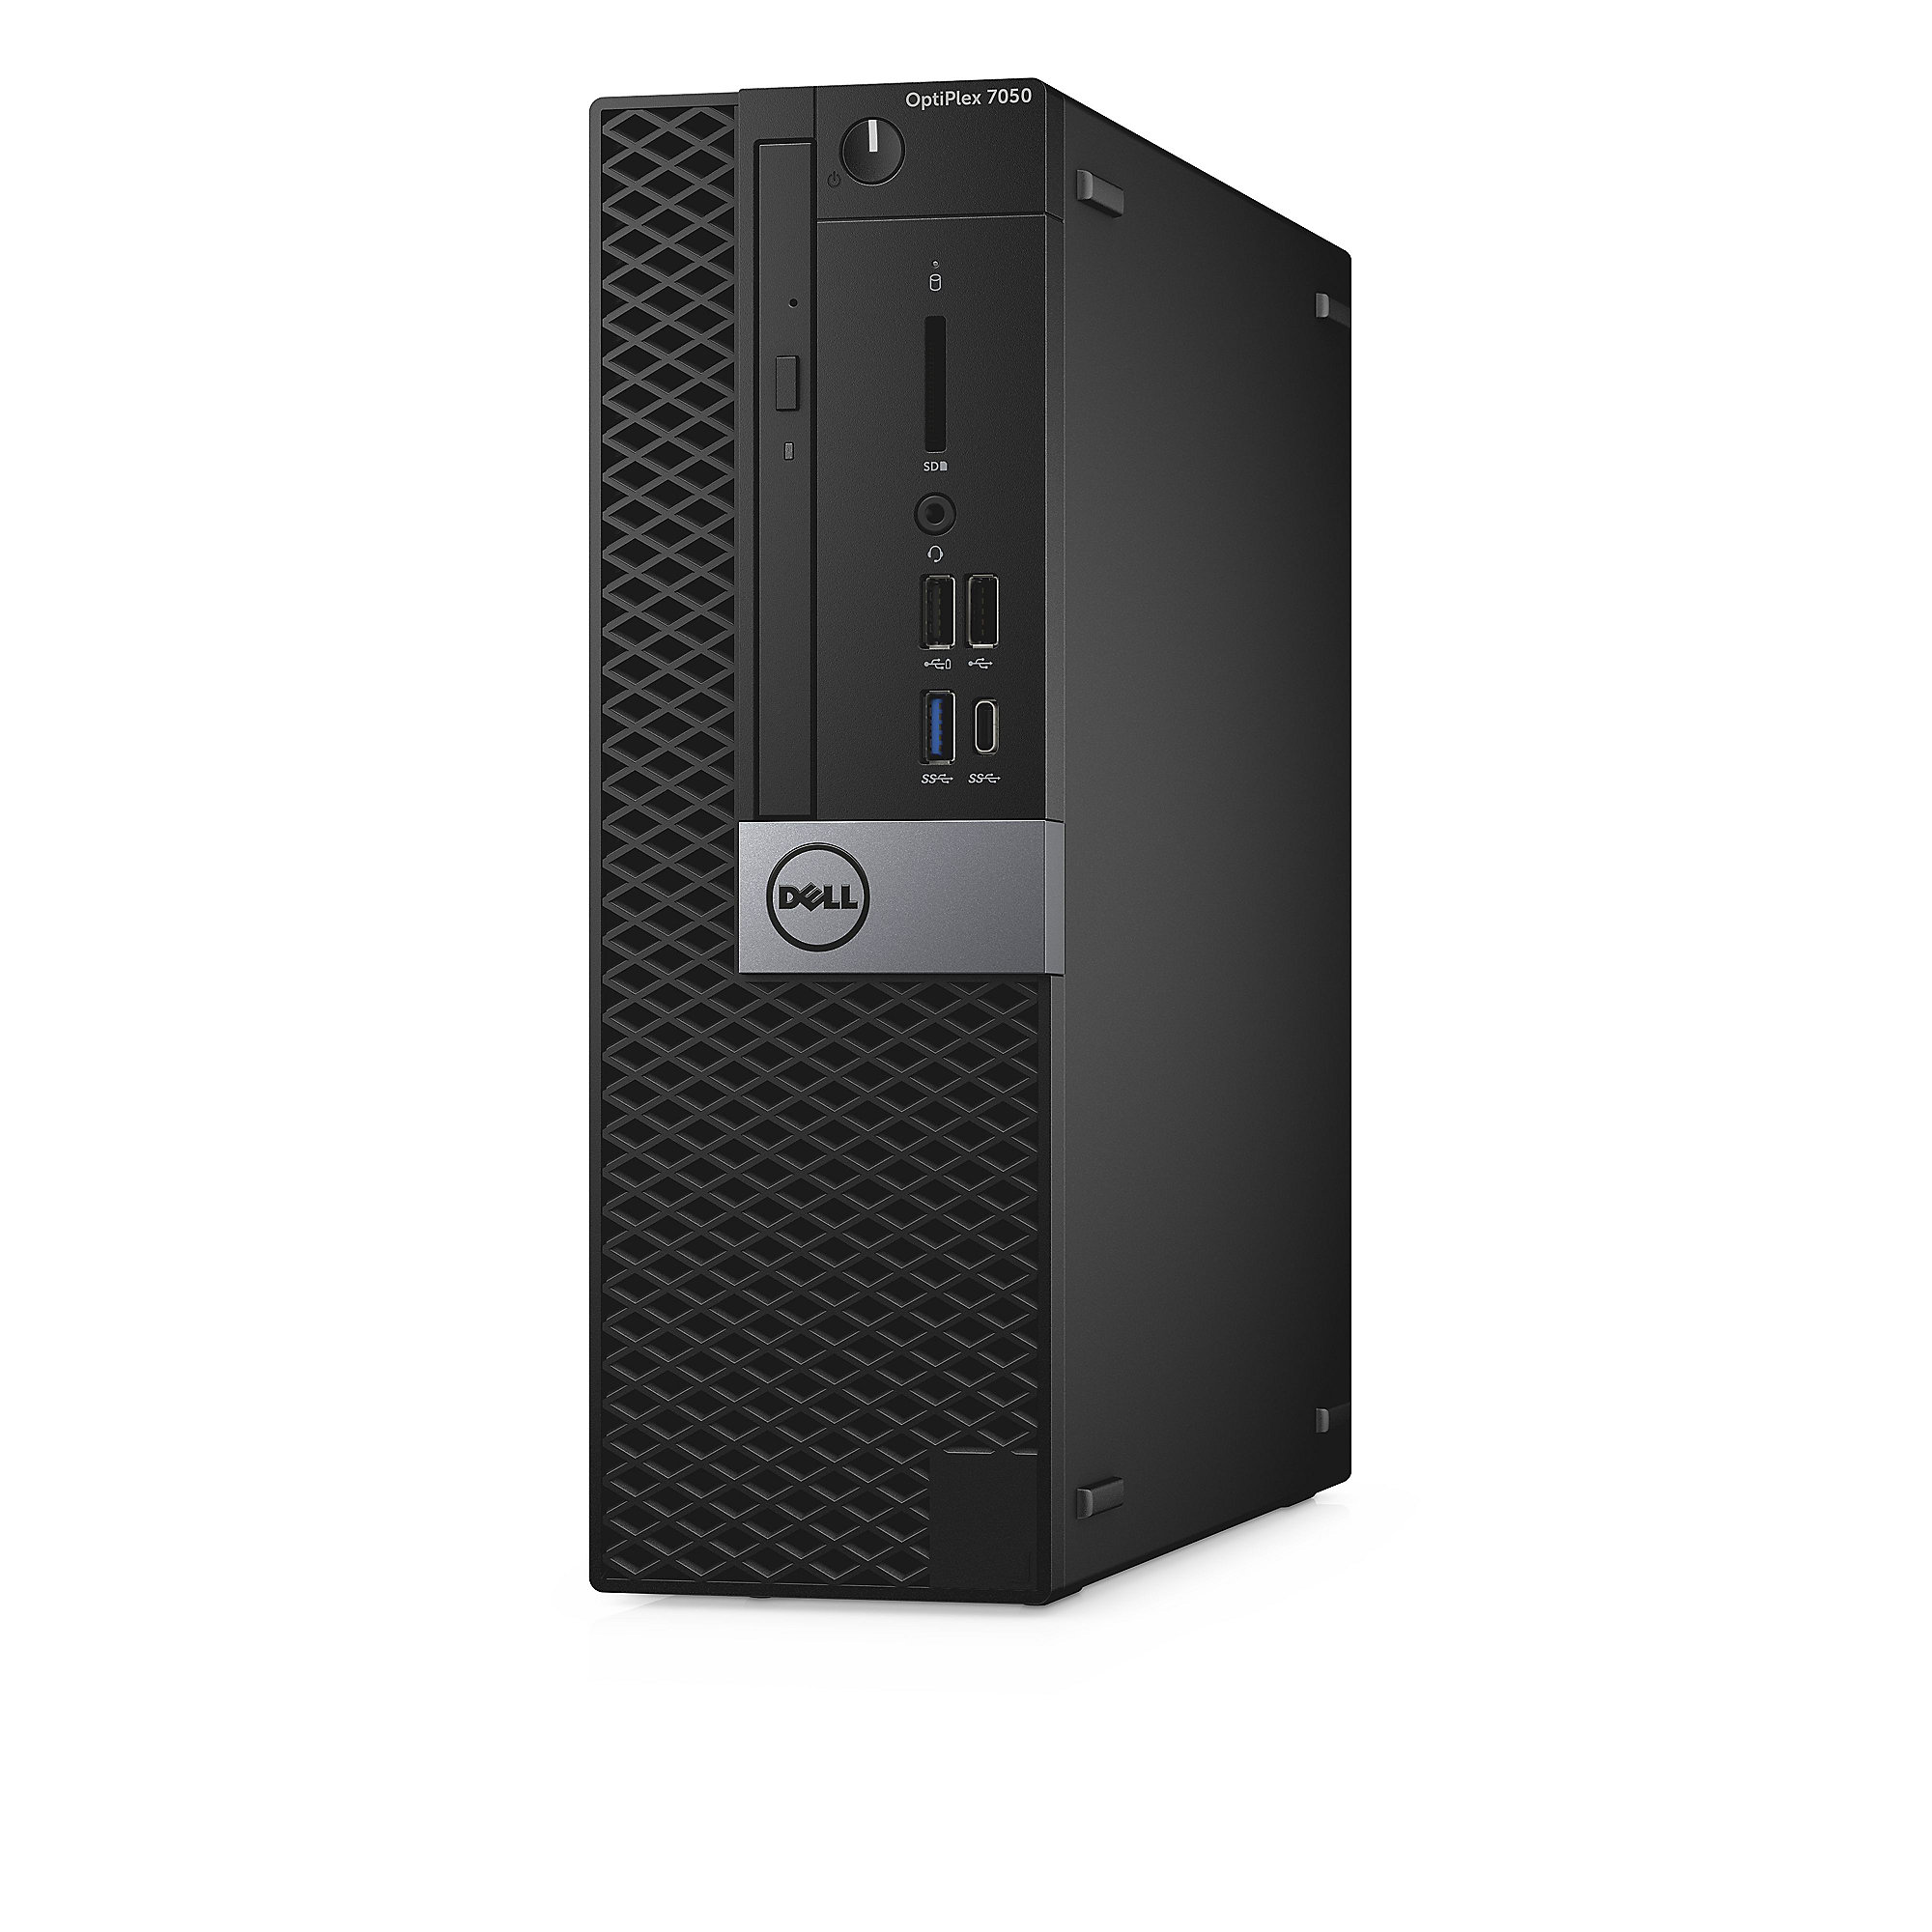 DELL OptiPlex 7050 SFF - i5-7500 4GB/500GB HDD Intel HD 630 DVD±RW W10P